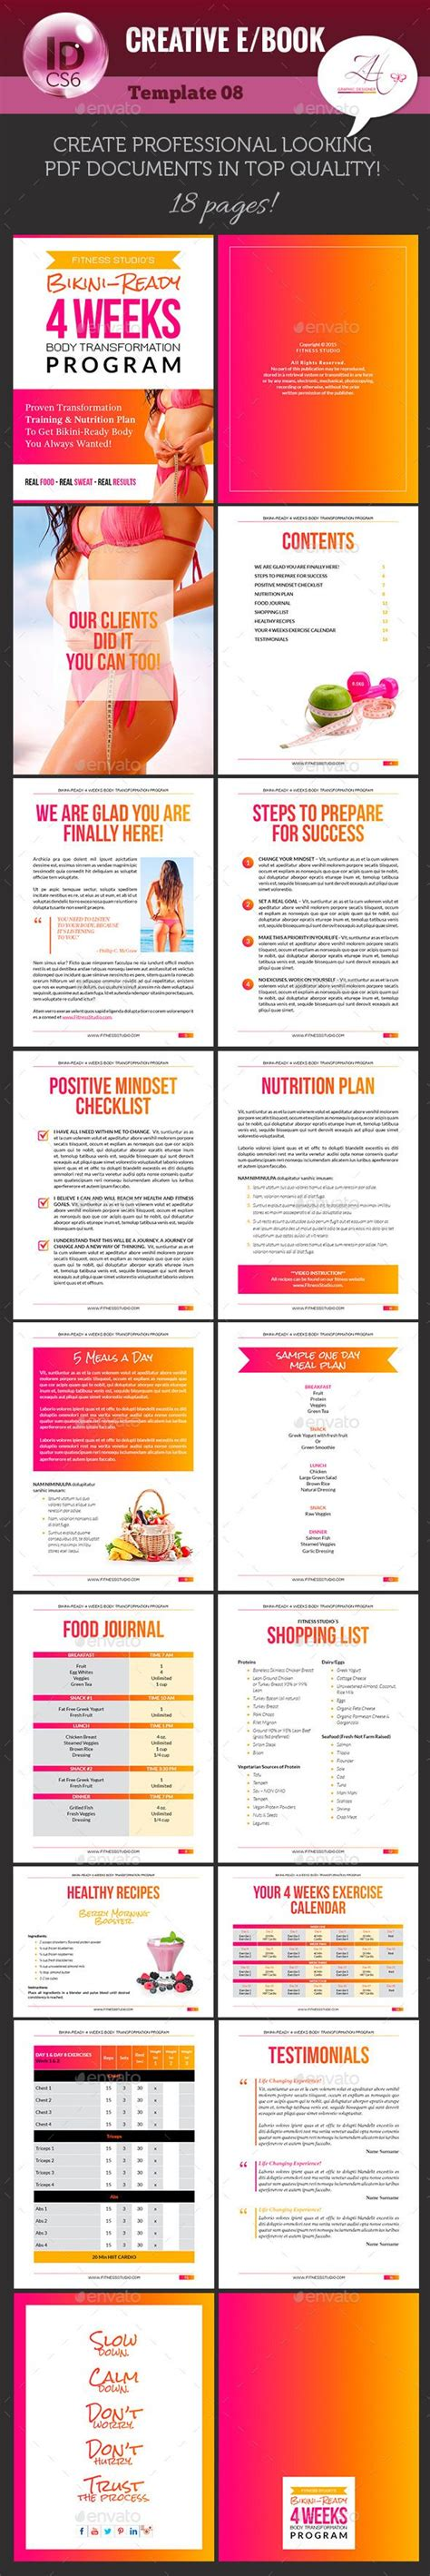 Creative E Book V 08 E Books Creative And Book Challenge Fitness Ebook Template